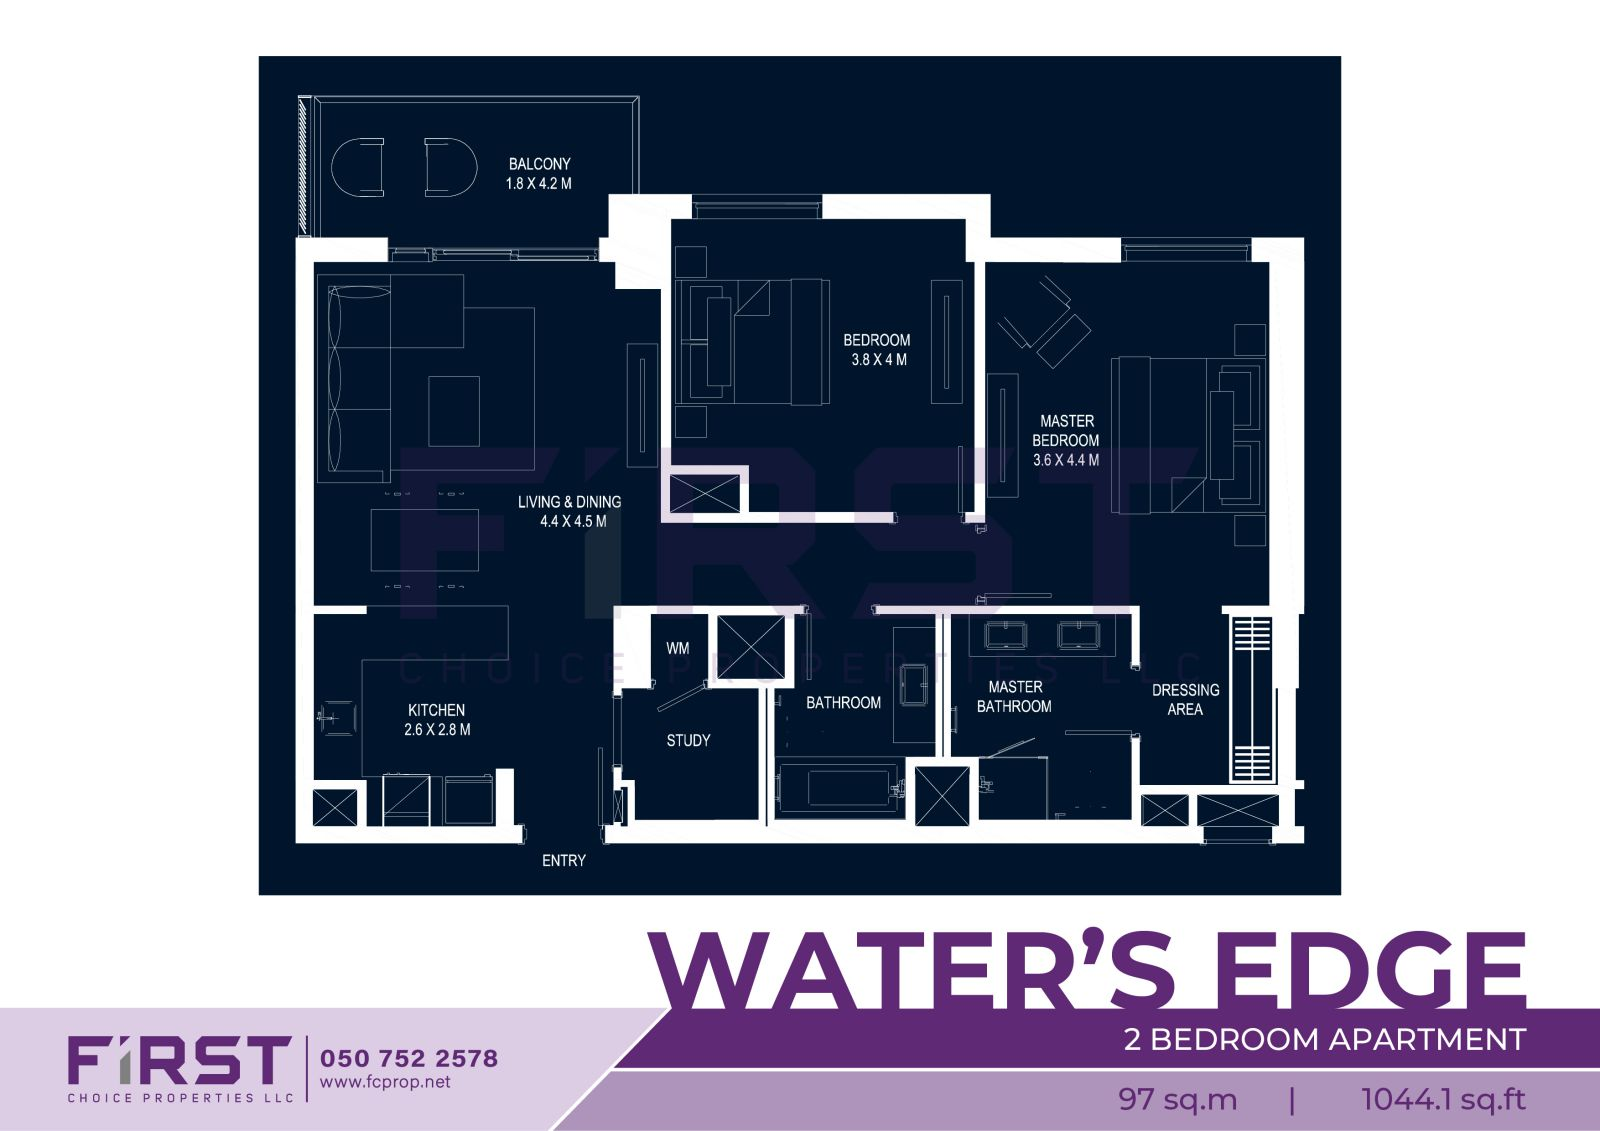 Yas Island Water's Edge 2 Bedroom 97 sq.m 1044.1 sq.ft .jpg